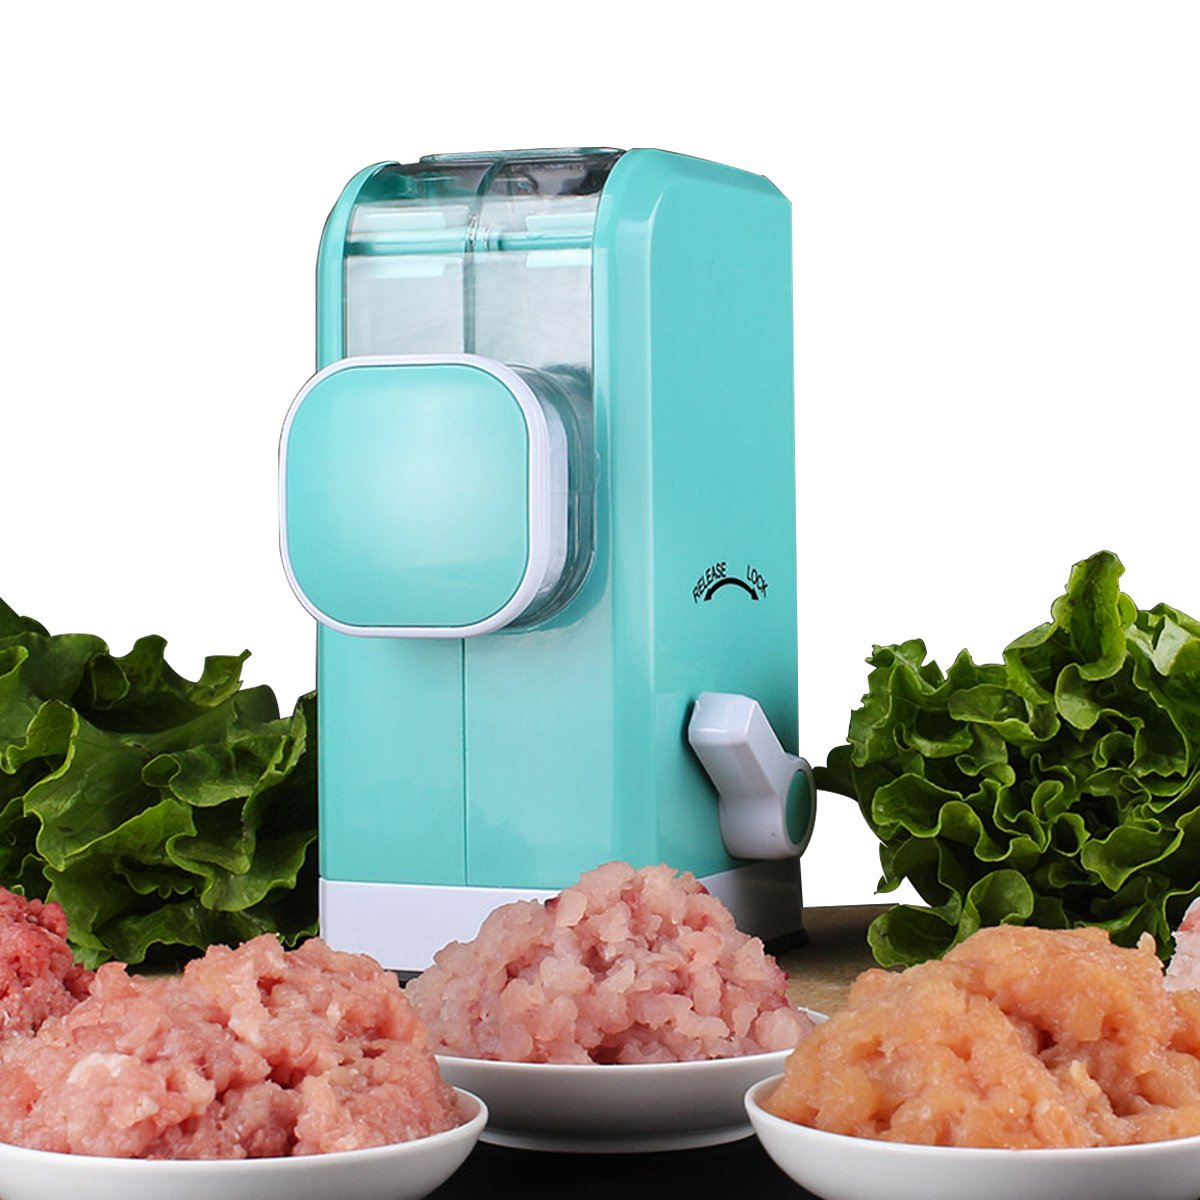 SOLOOP Household Manual Multi-Function Meat Mincer Grinder with Powerful Suction